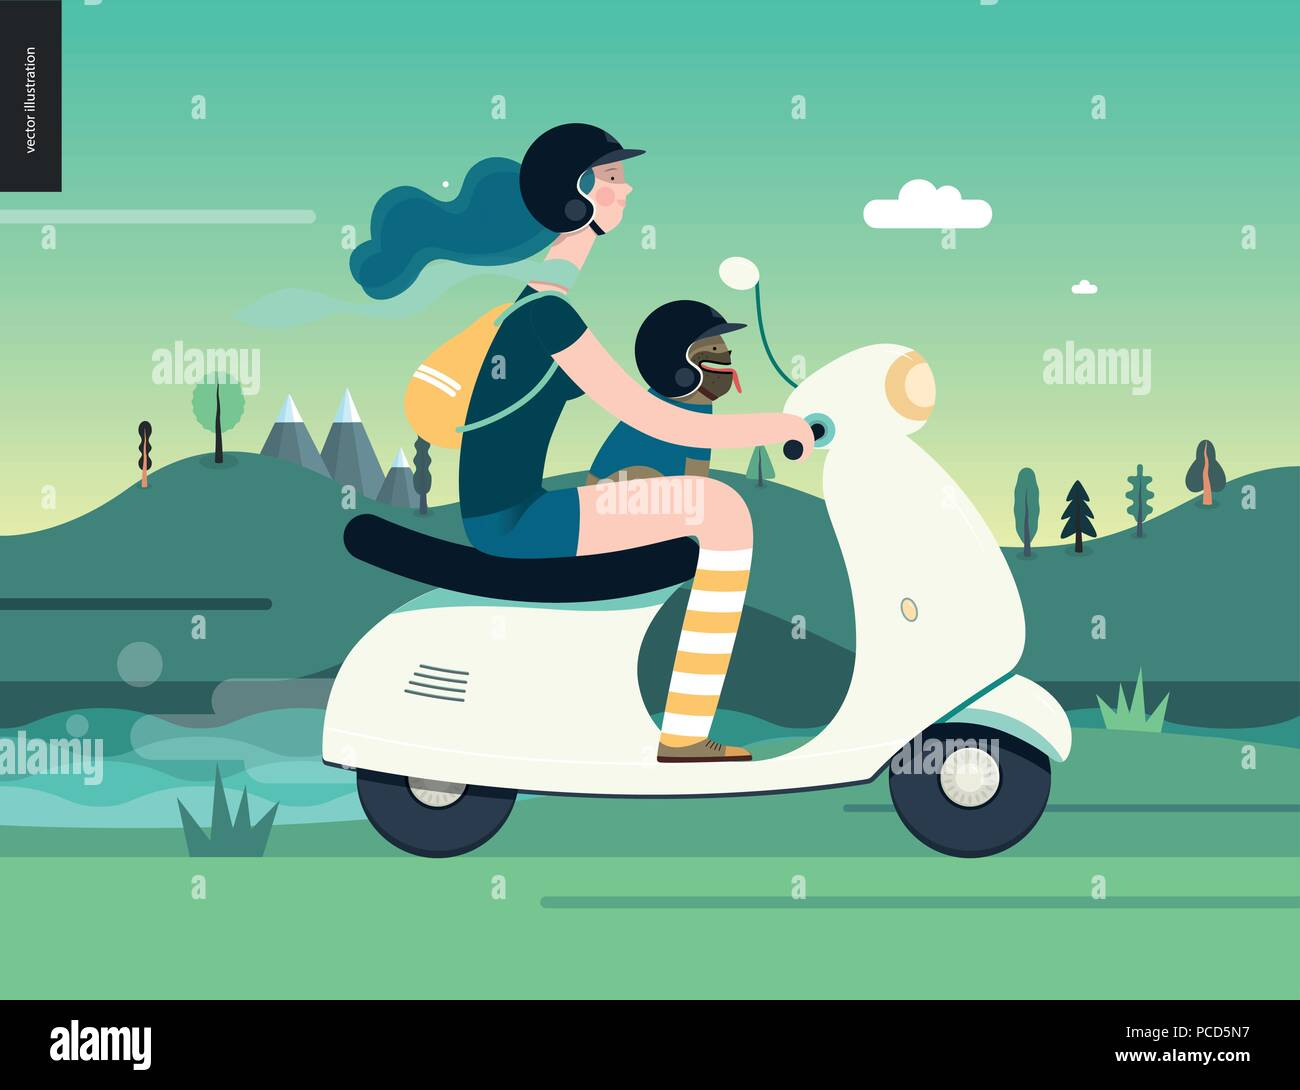 Girl on a scooter -flat vector concept illustration of blue-haired girl wearing helmet riding a white scooter, a french bulldog on lap wearing small h Stock Vector